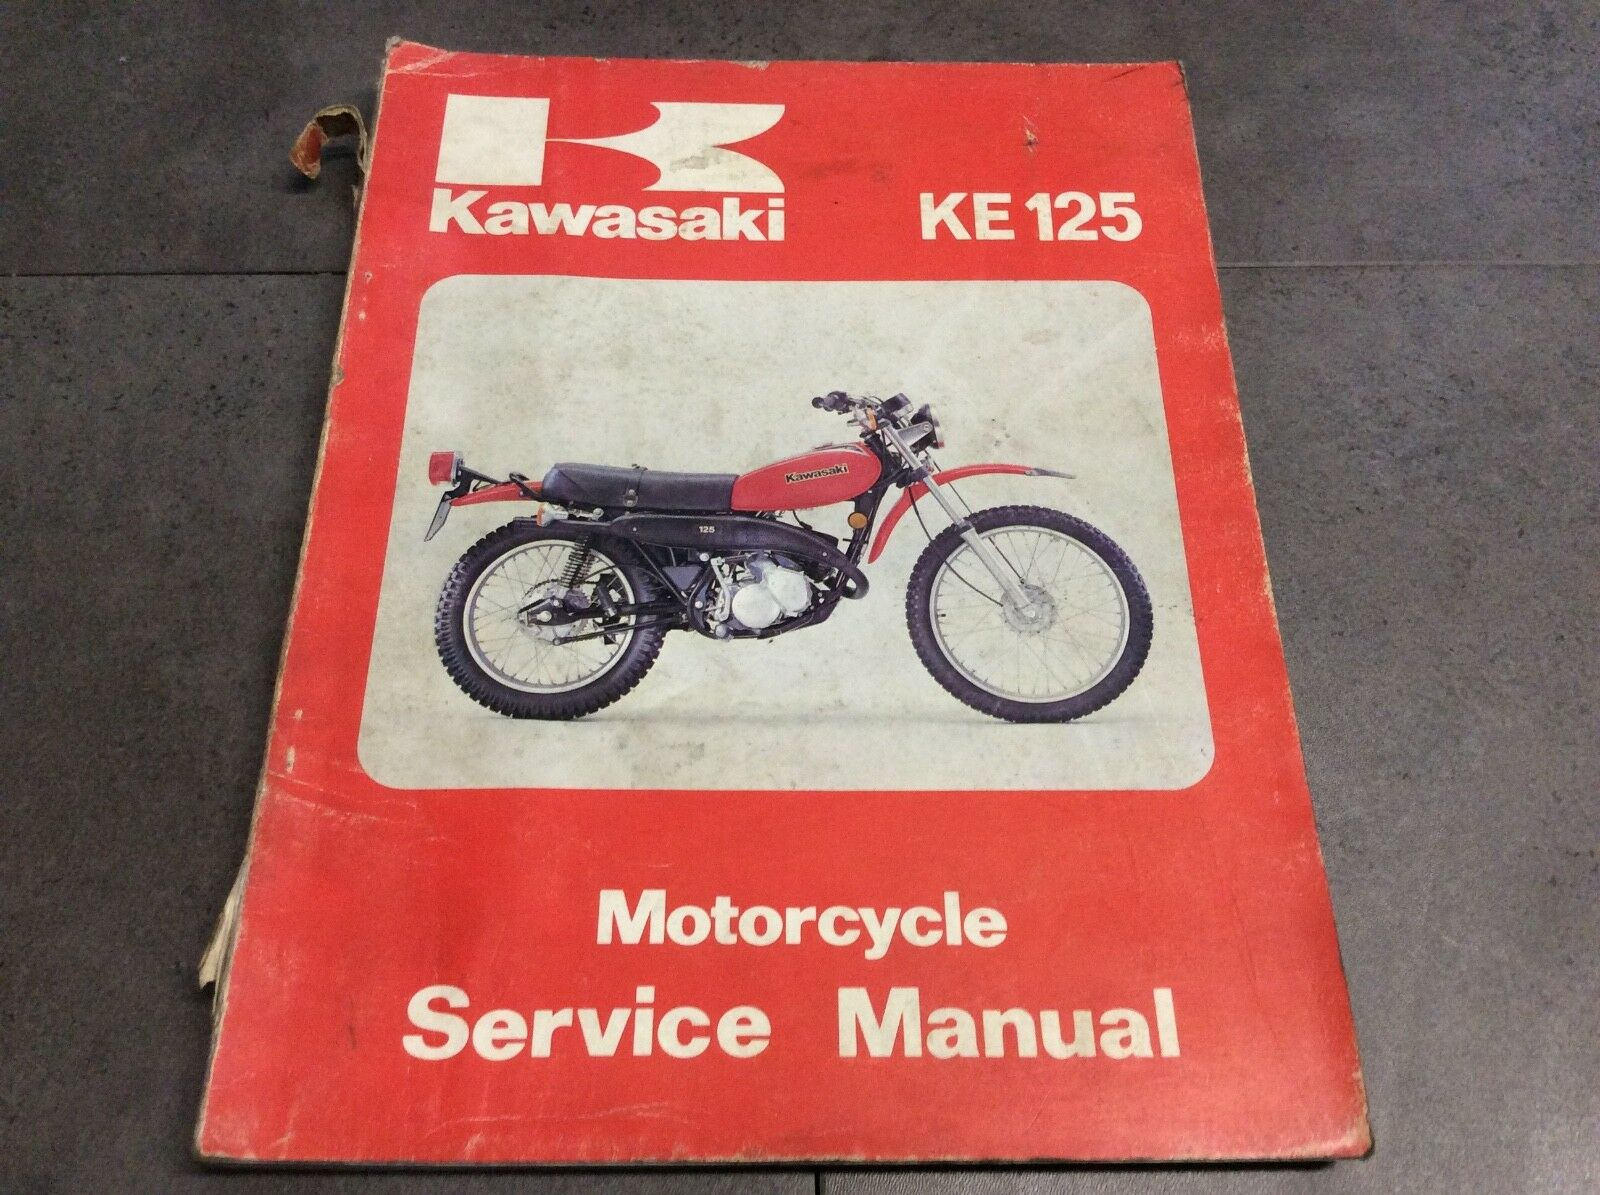 Genuine Kawasaki KE125 1979-1981 Motorcycle Service Shop Manual  99924-1010-03 1 of 4Only 1 available ...